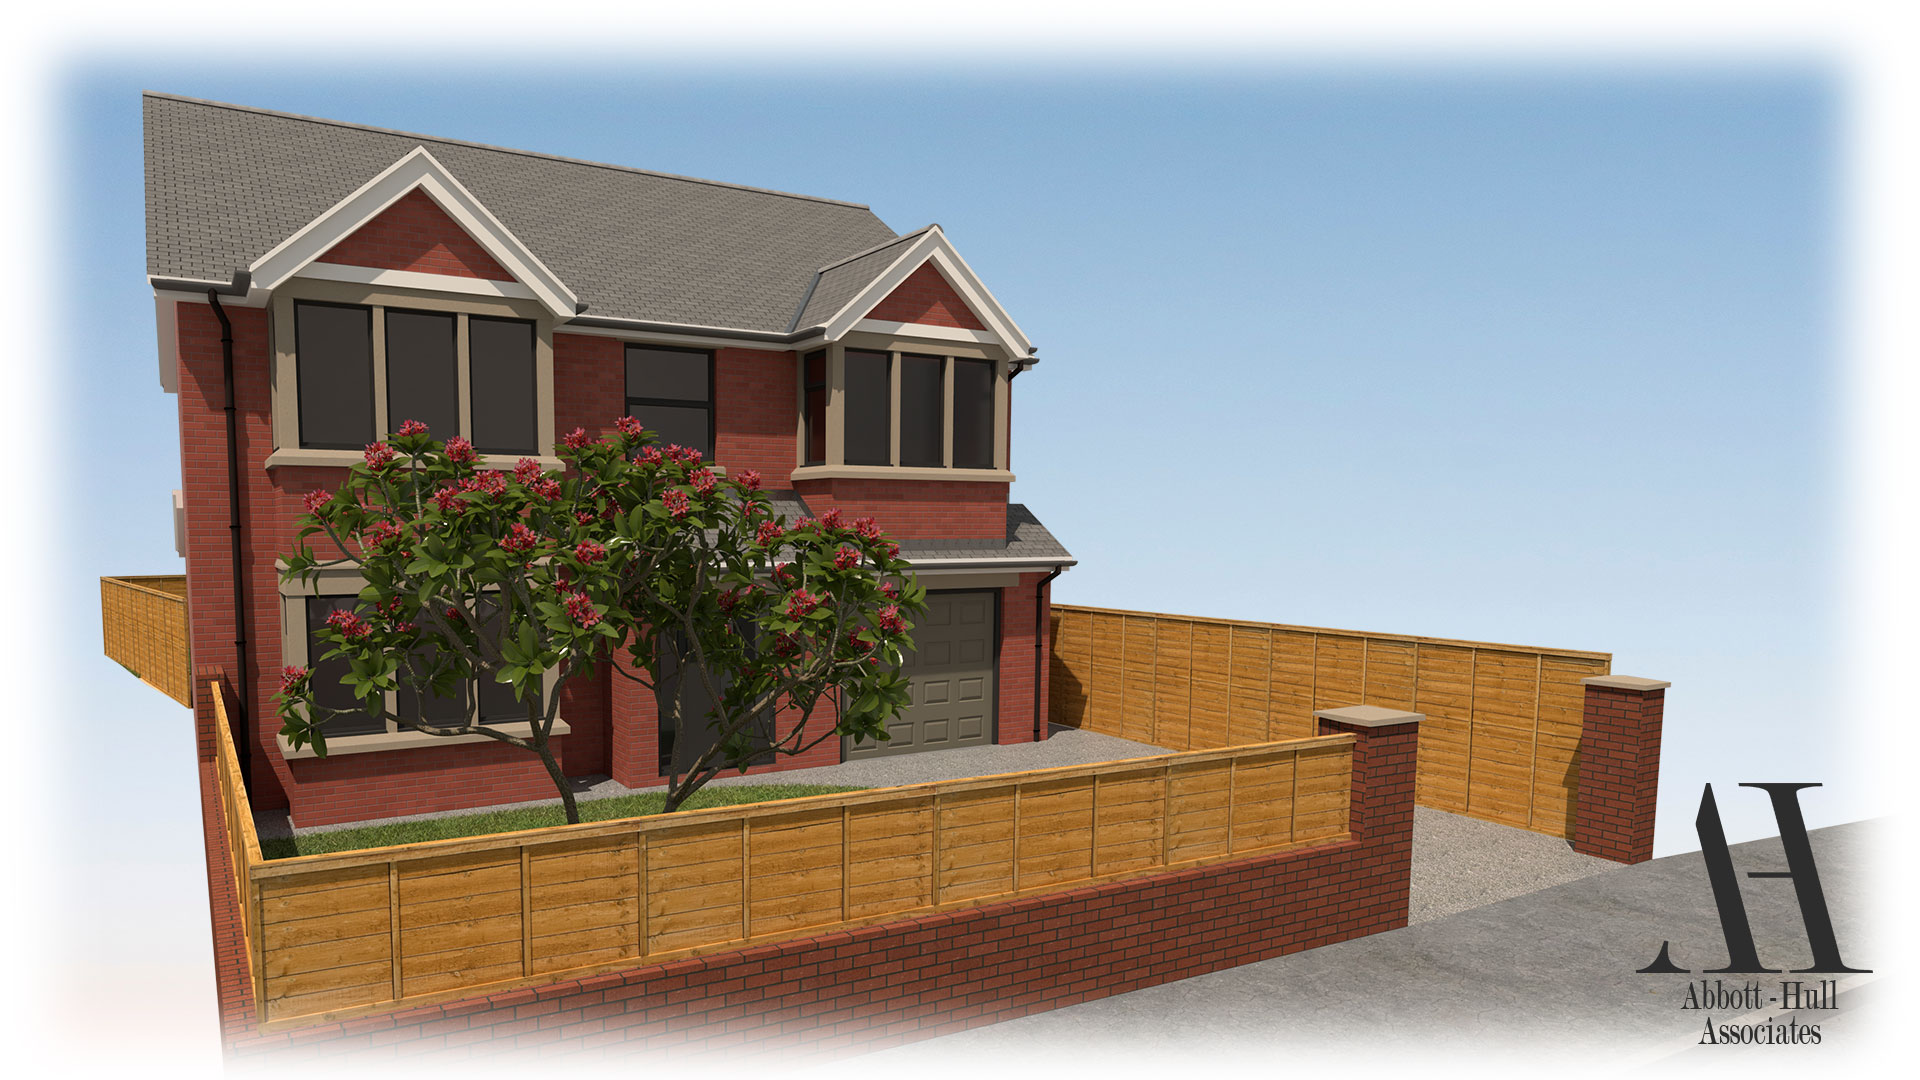 Marsh Road, Thornton-Cleveleys, House Extension - Visual B